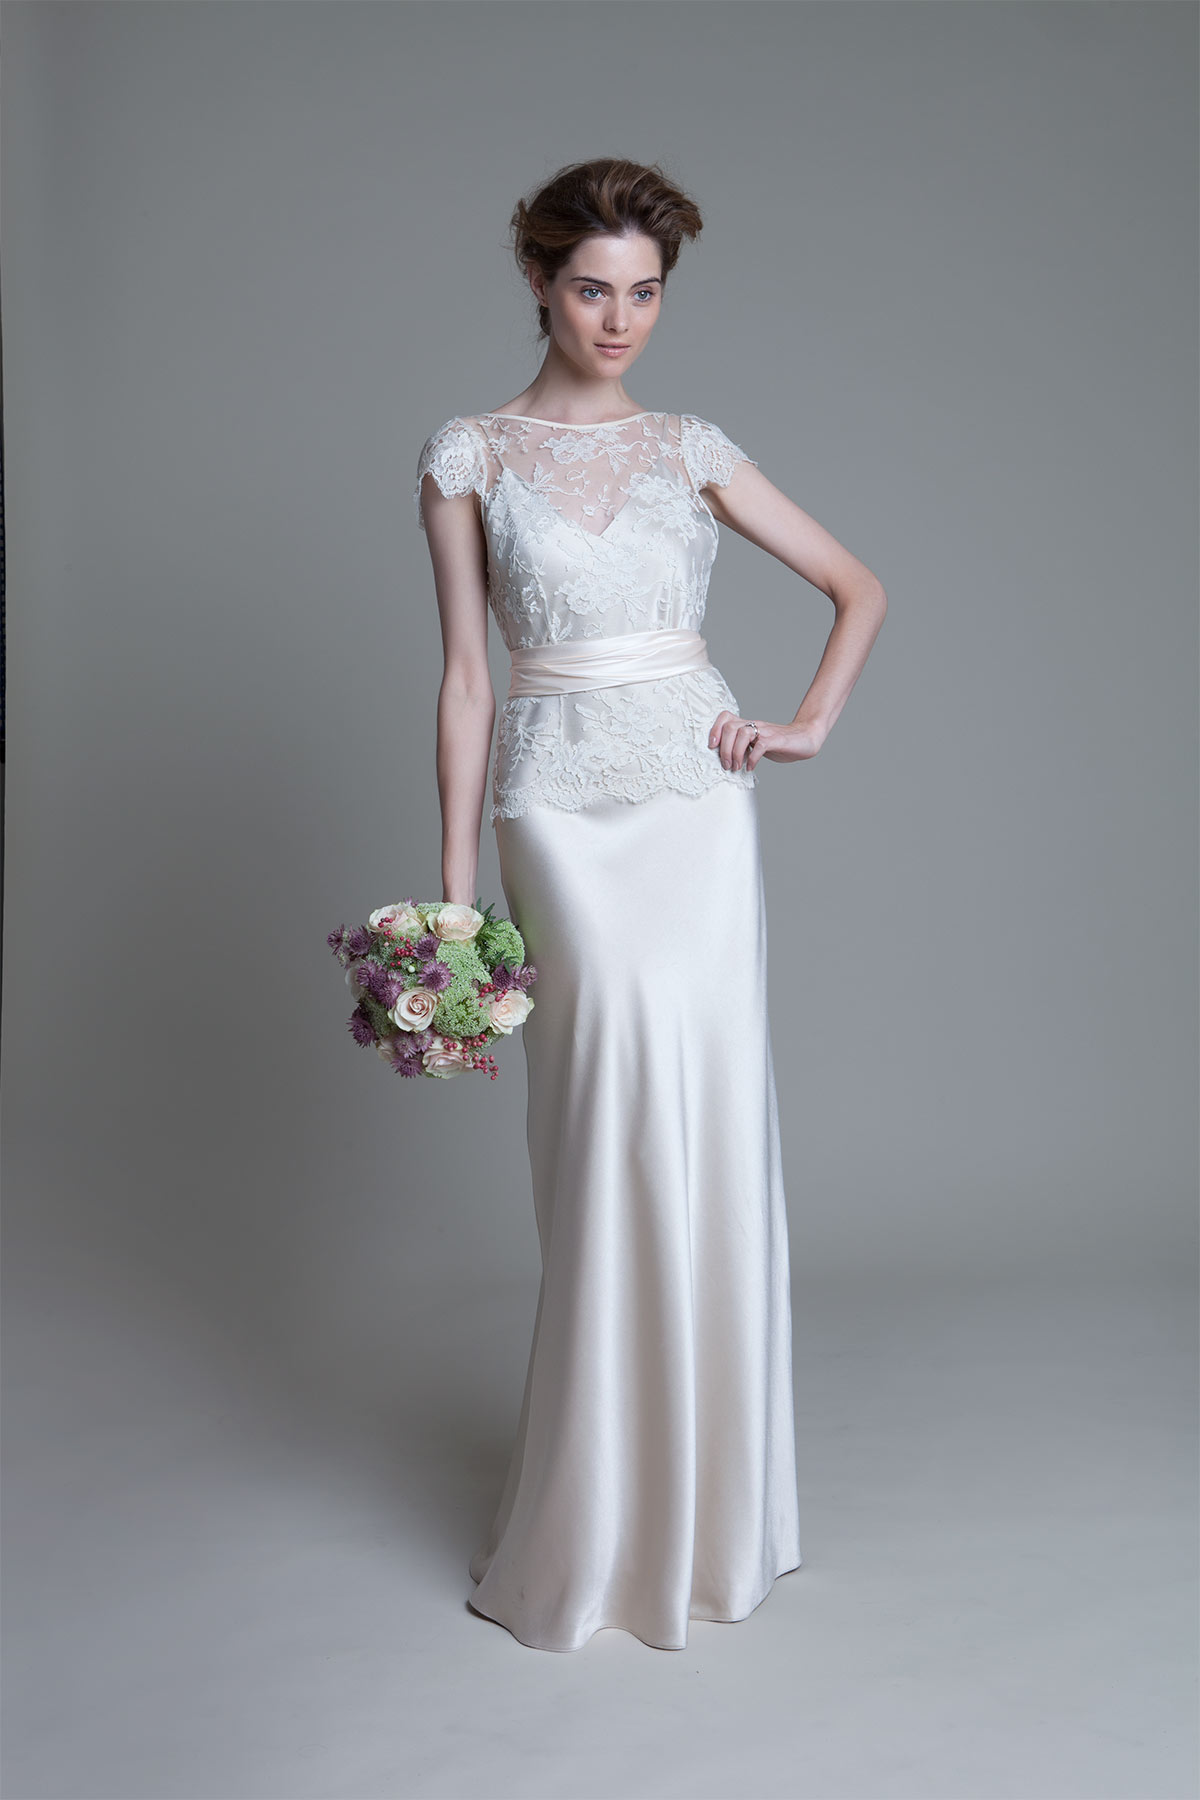 Iris french lace jacket with duchess satin sash over a crepe back satin Iris slip wedding dress by Halfpenny London